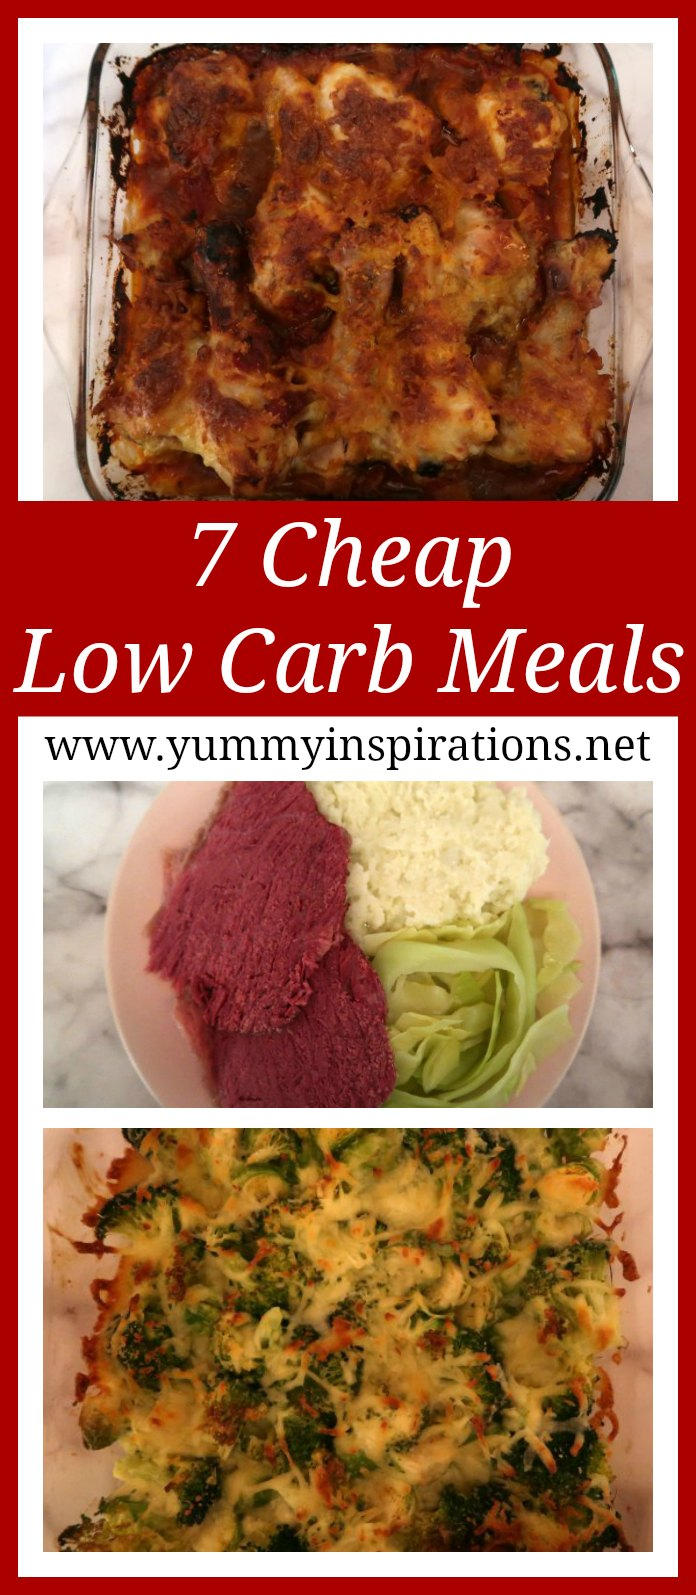 7 Cheap Low Carb Meals - a week of easy Keto Diet dinner recipes on a budget.